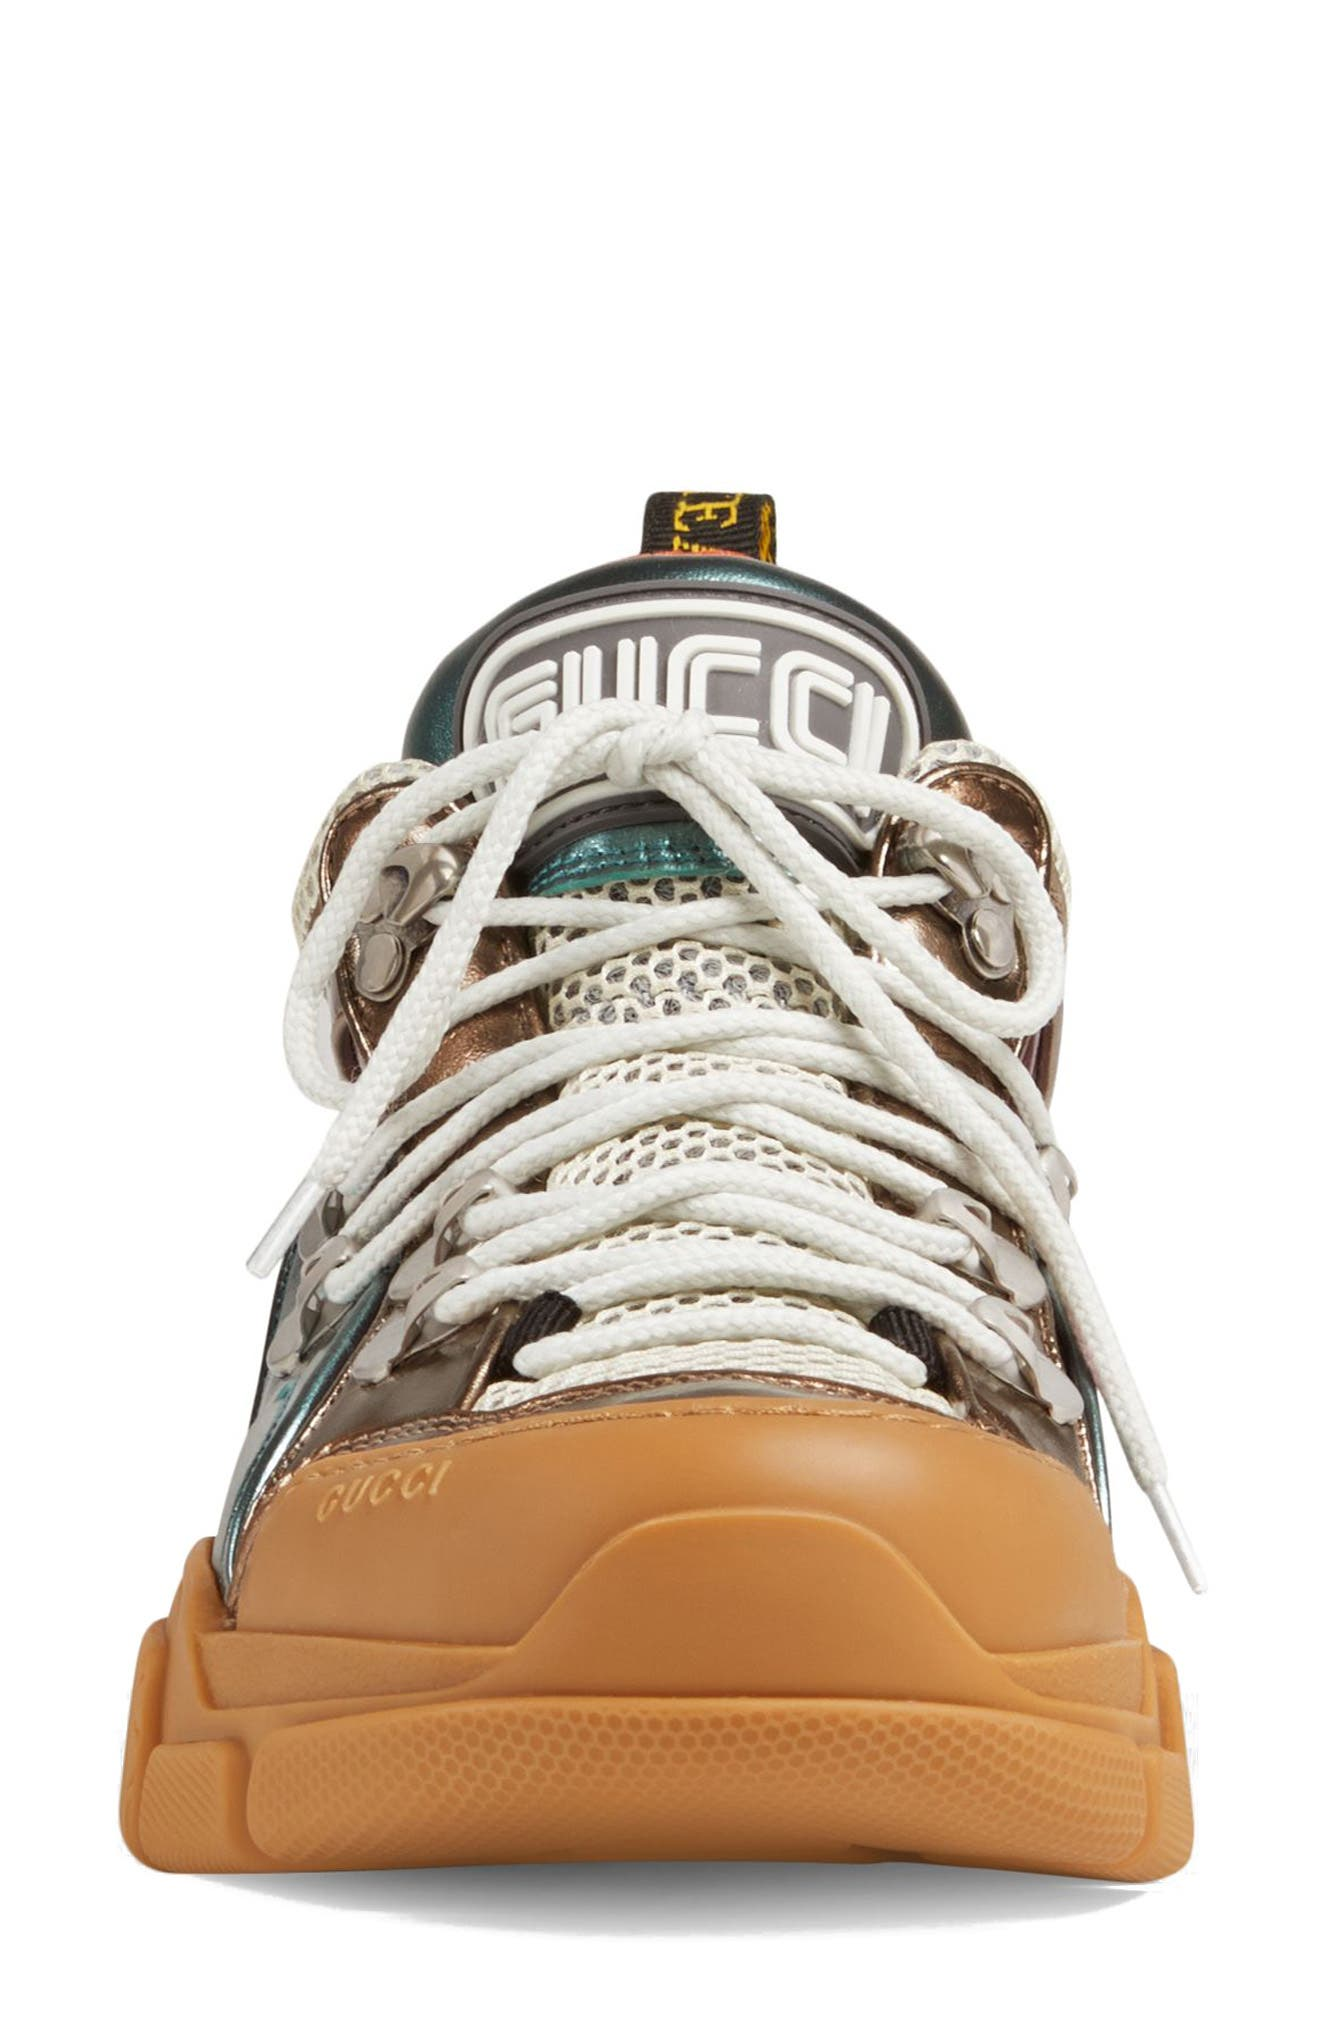 GUCCI, Flashtrek Lace-Up Sneaker, Alternate thumbnail 4, color, BROWN/ BLUE/ PINK